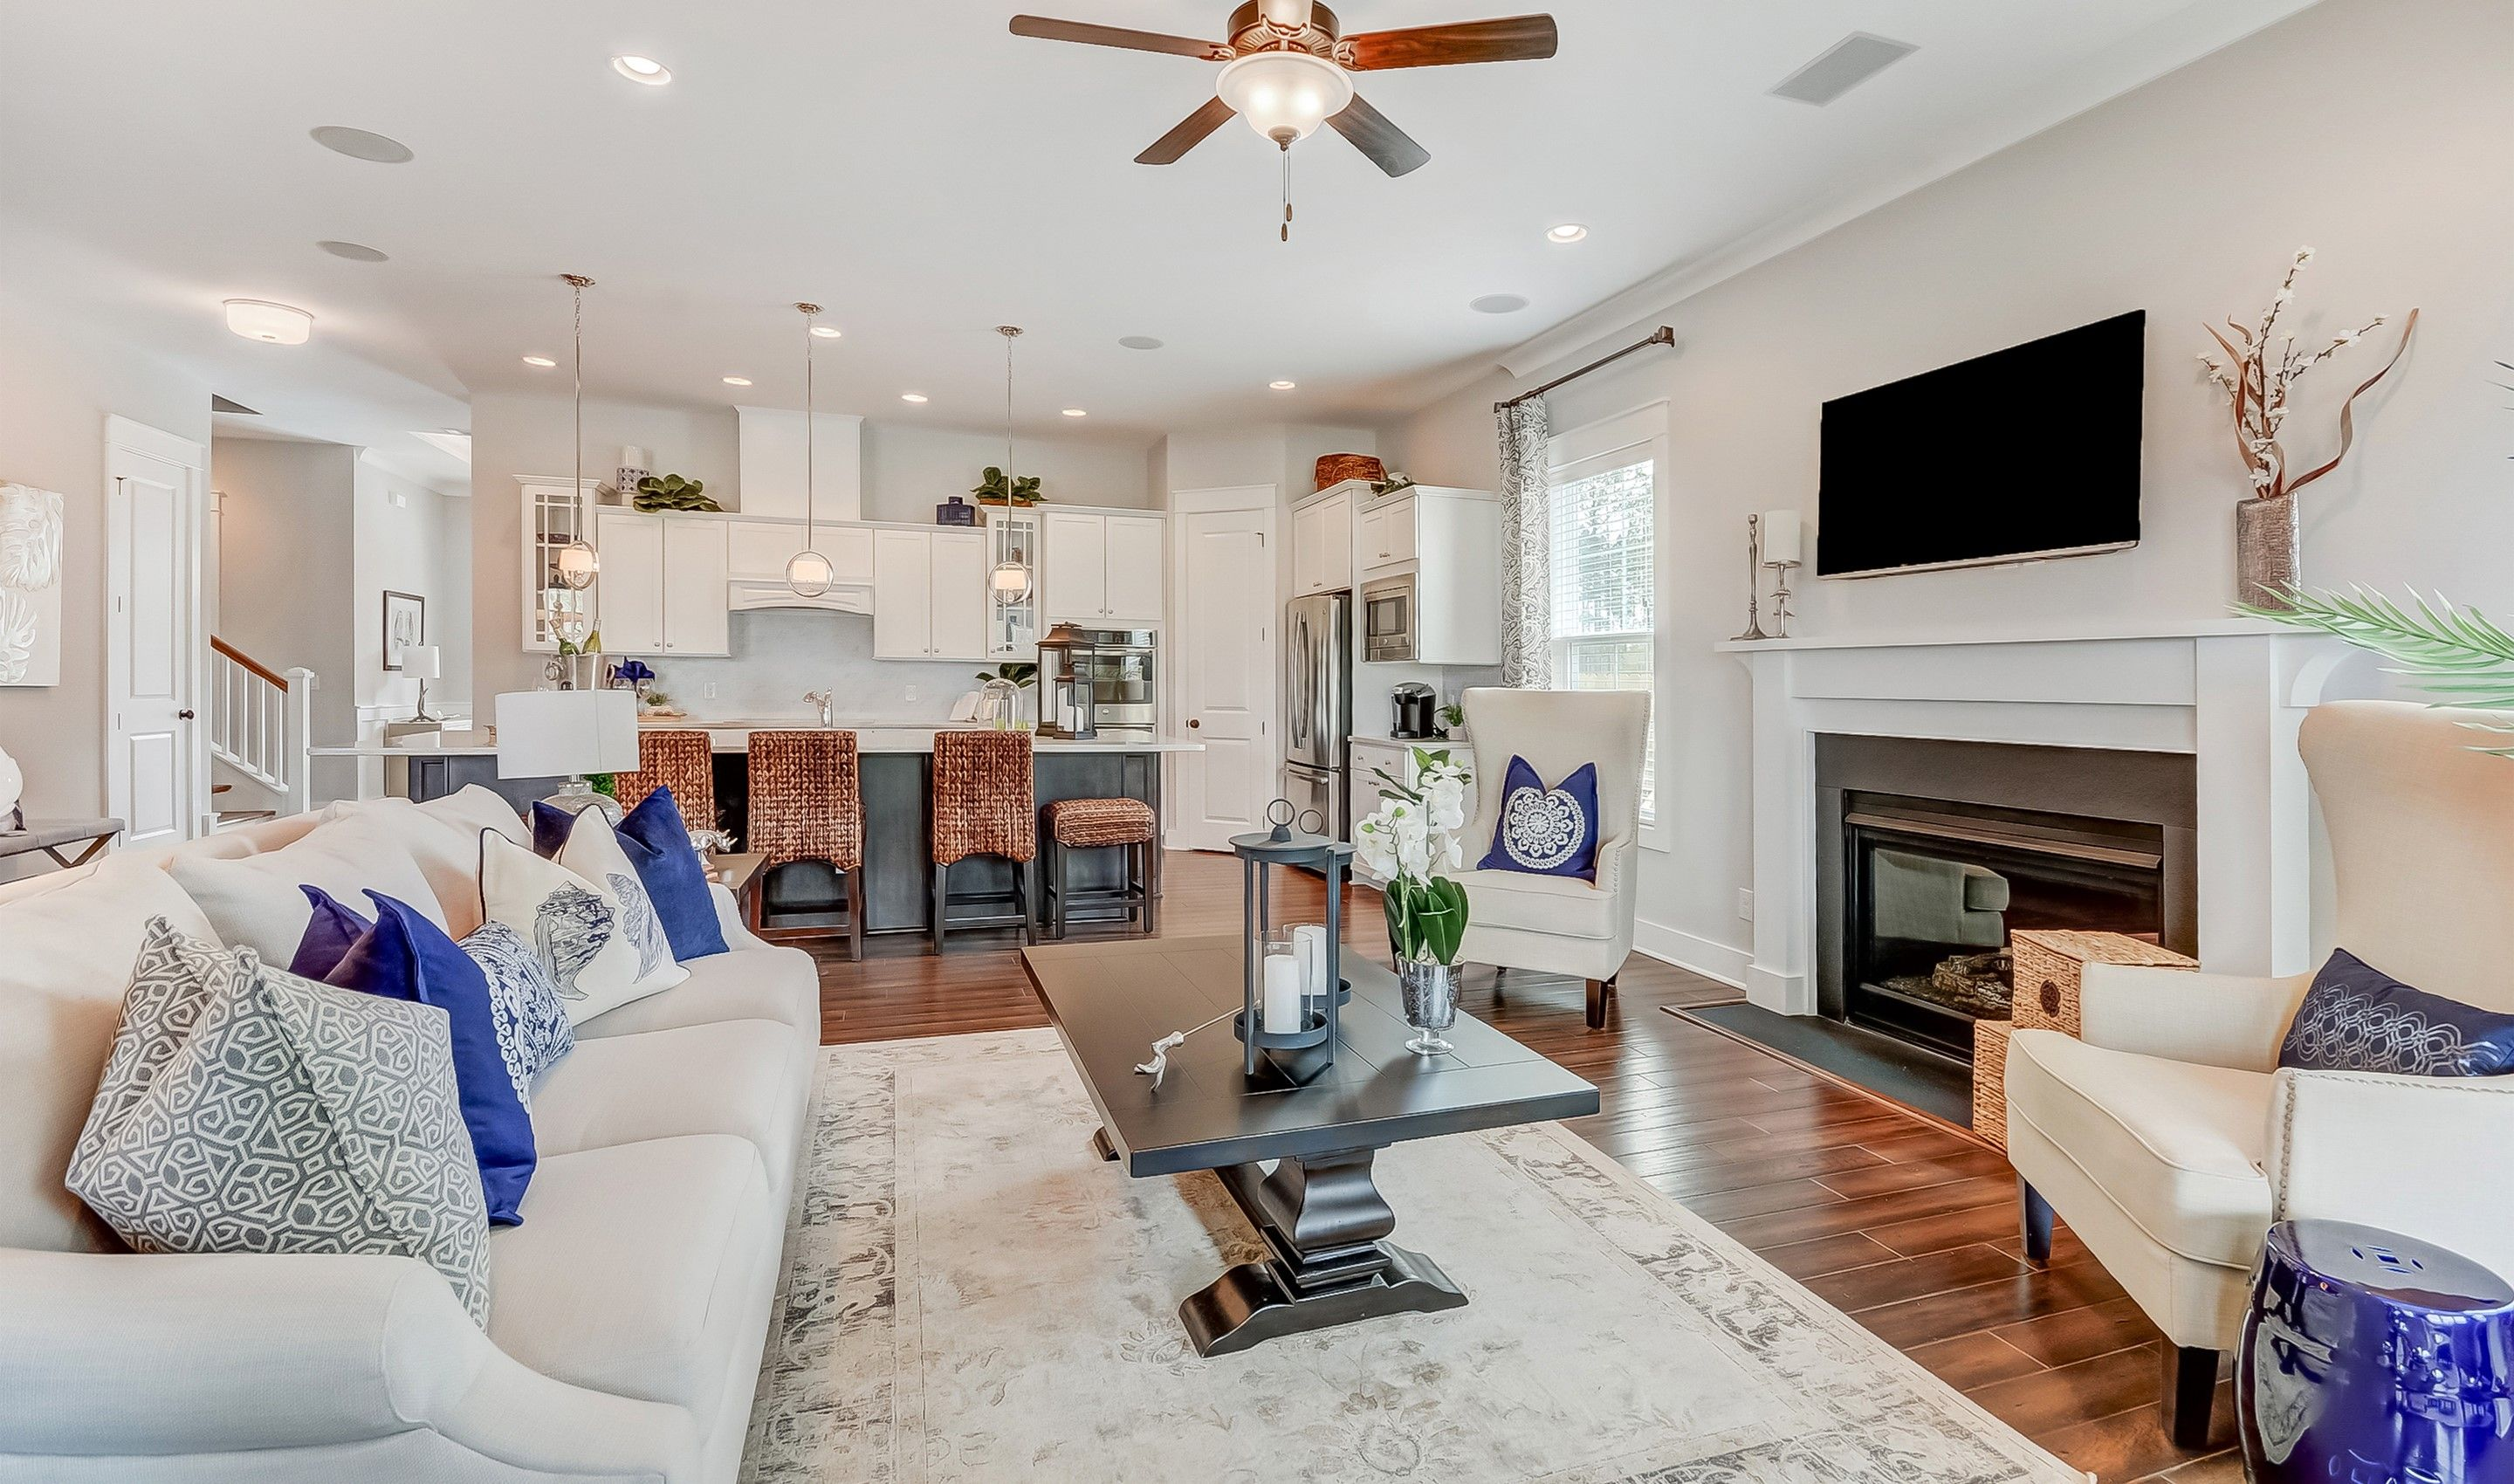 Single Family for Sale at Santorini Loft - Grove Collection 145 Bramswell Road, Homesite 665 Pooler, Georgia 31322 United States